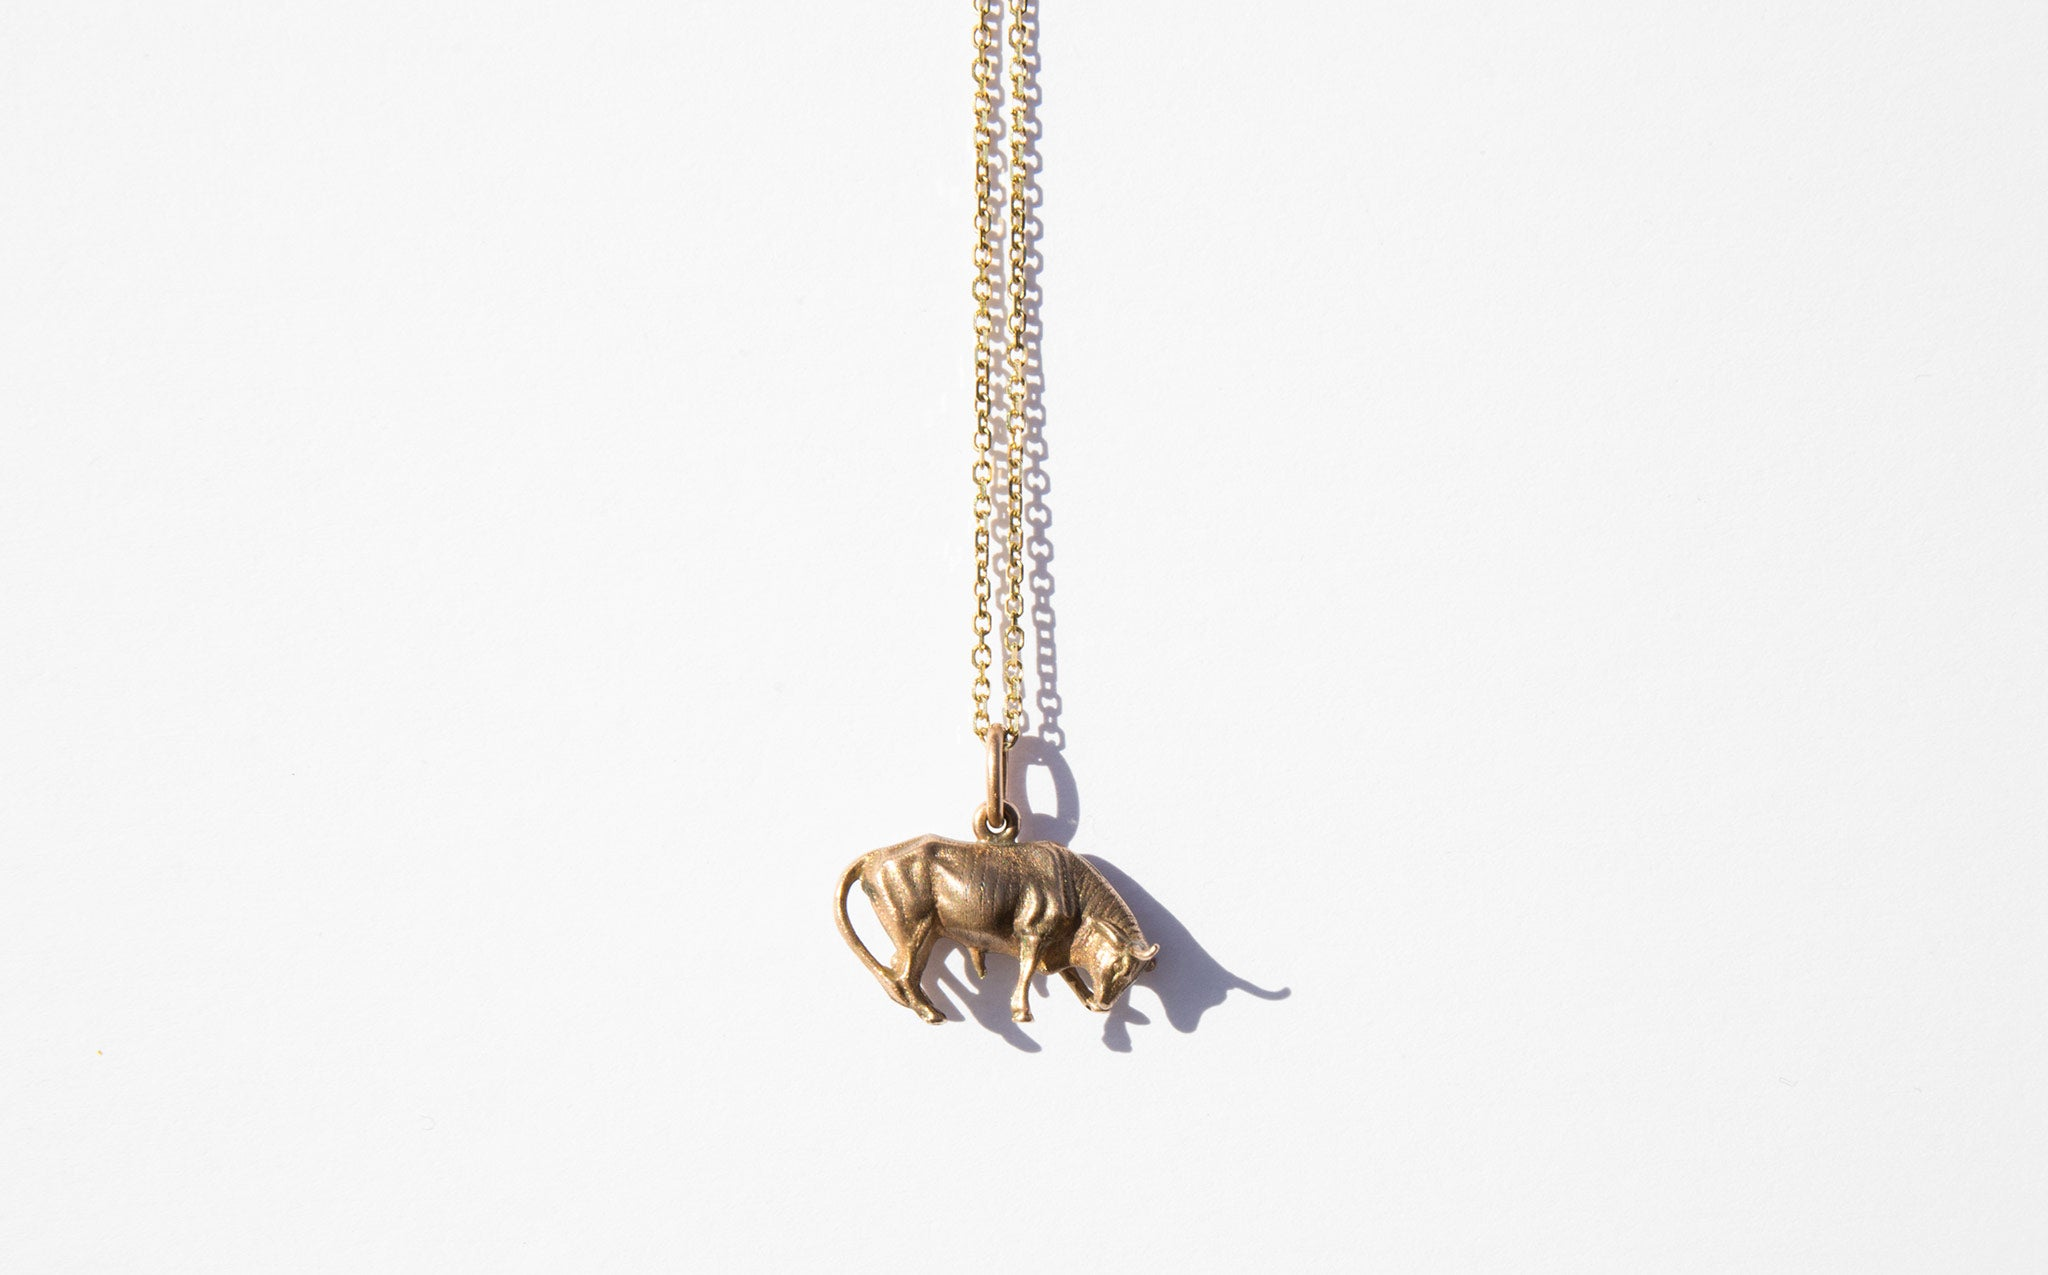 Bull Charm Necklace